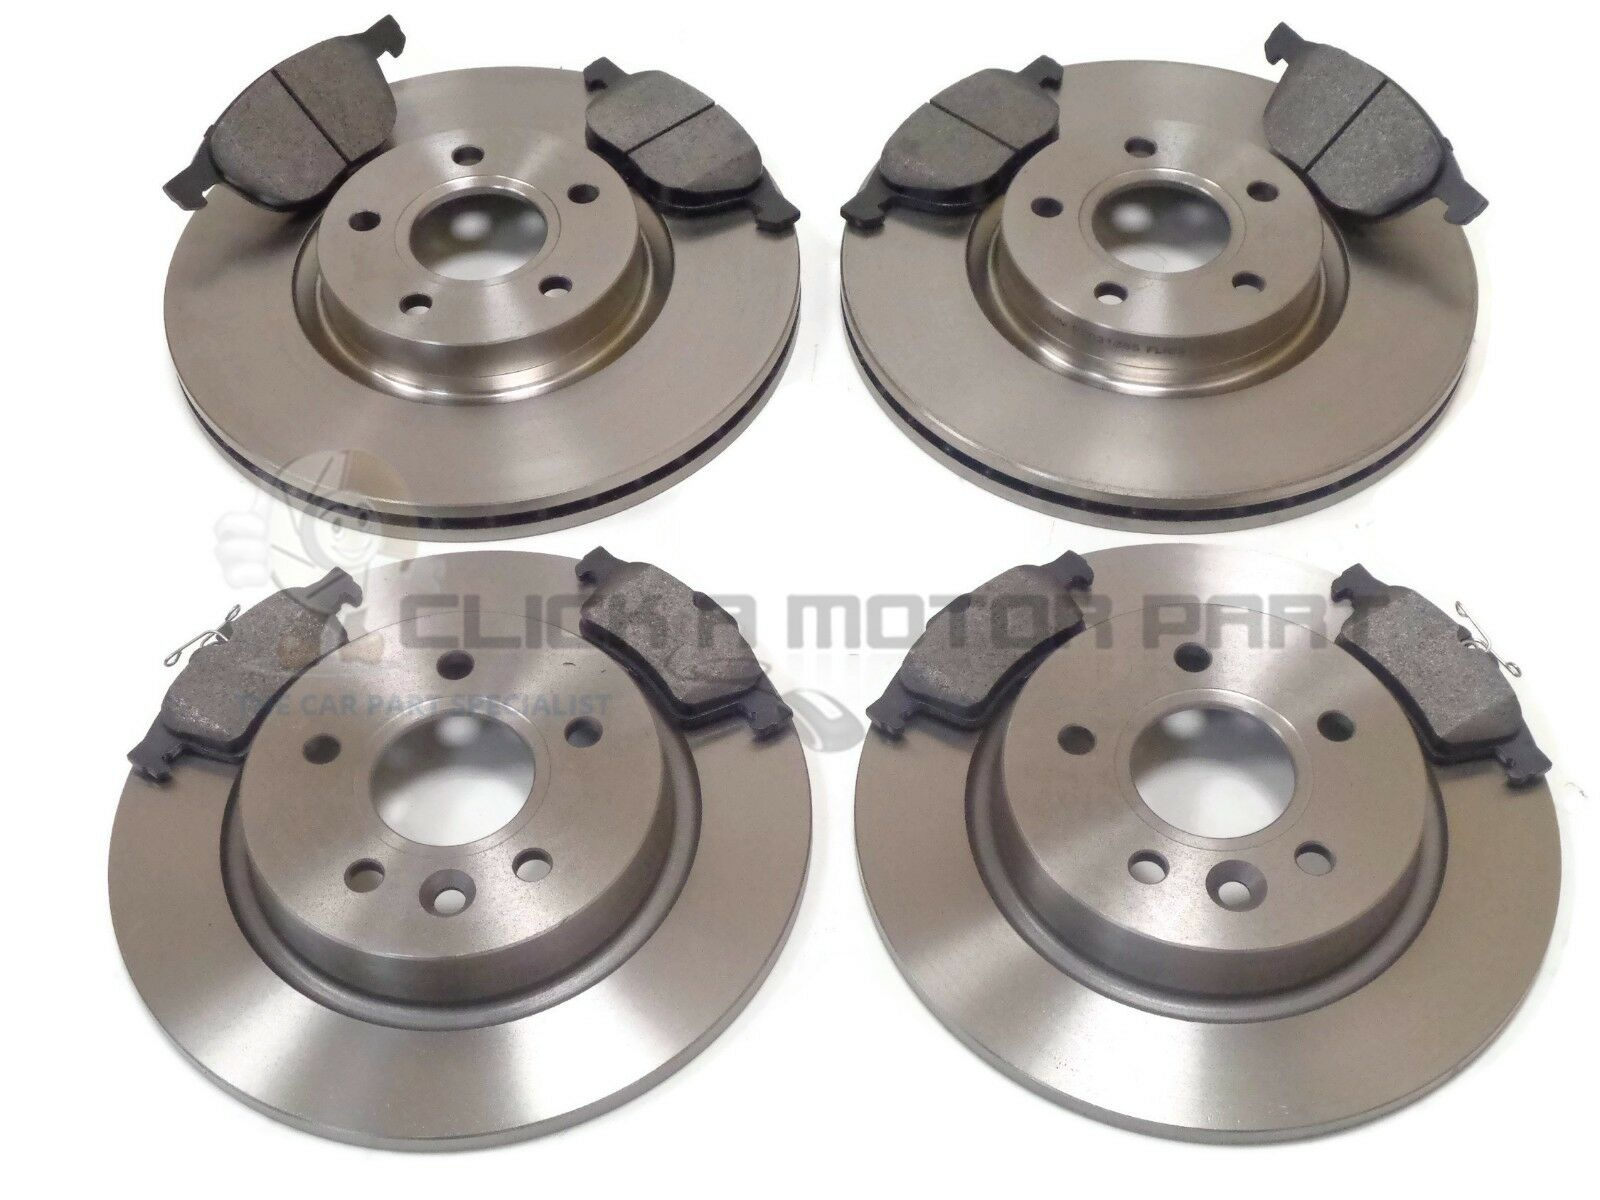 FORD FOCUS MK2 ESTATE 2005-2011 FRONT 300MM AND REAR 280MM BRAKE DISCS /& PADS